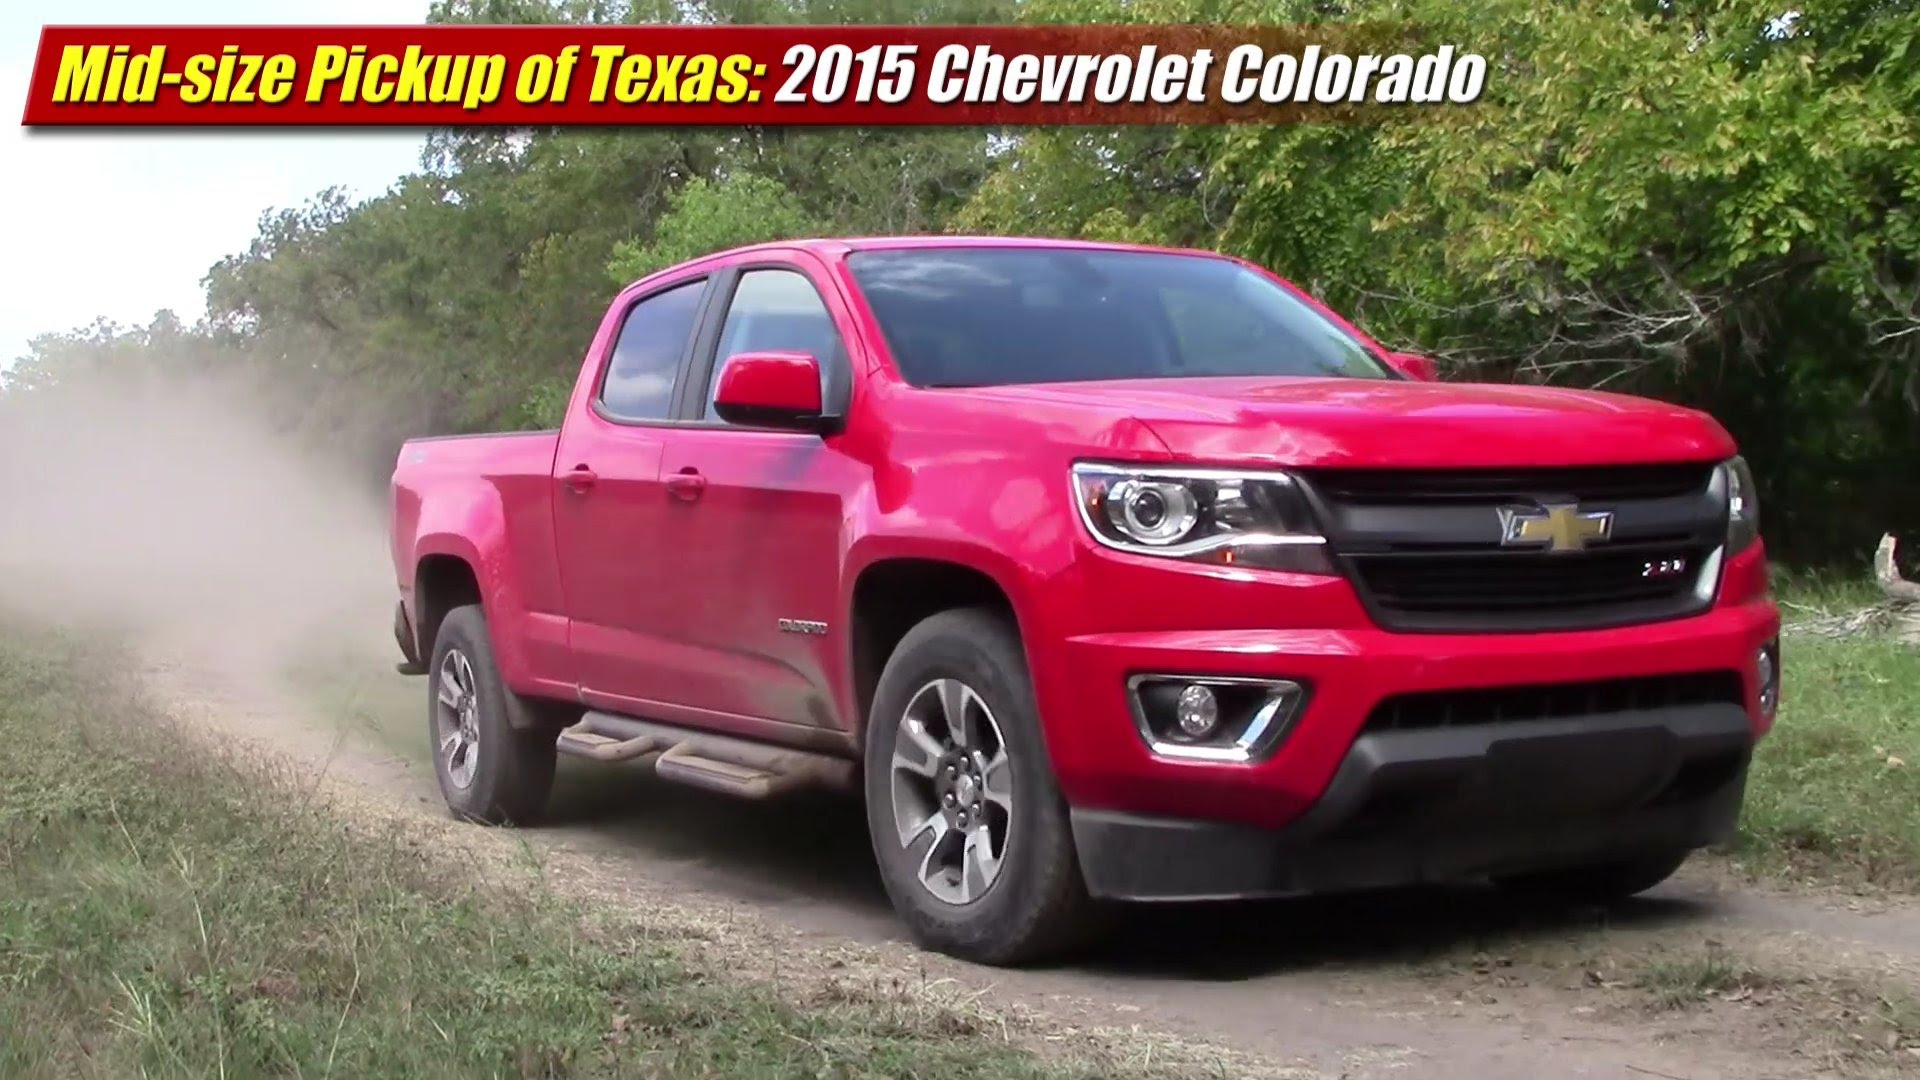 Mid-size Pickup of Texas: 2015 Chevrolet Colorado ...